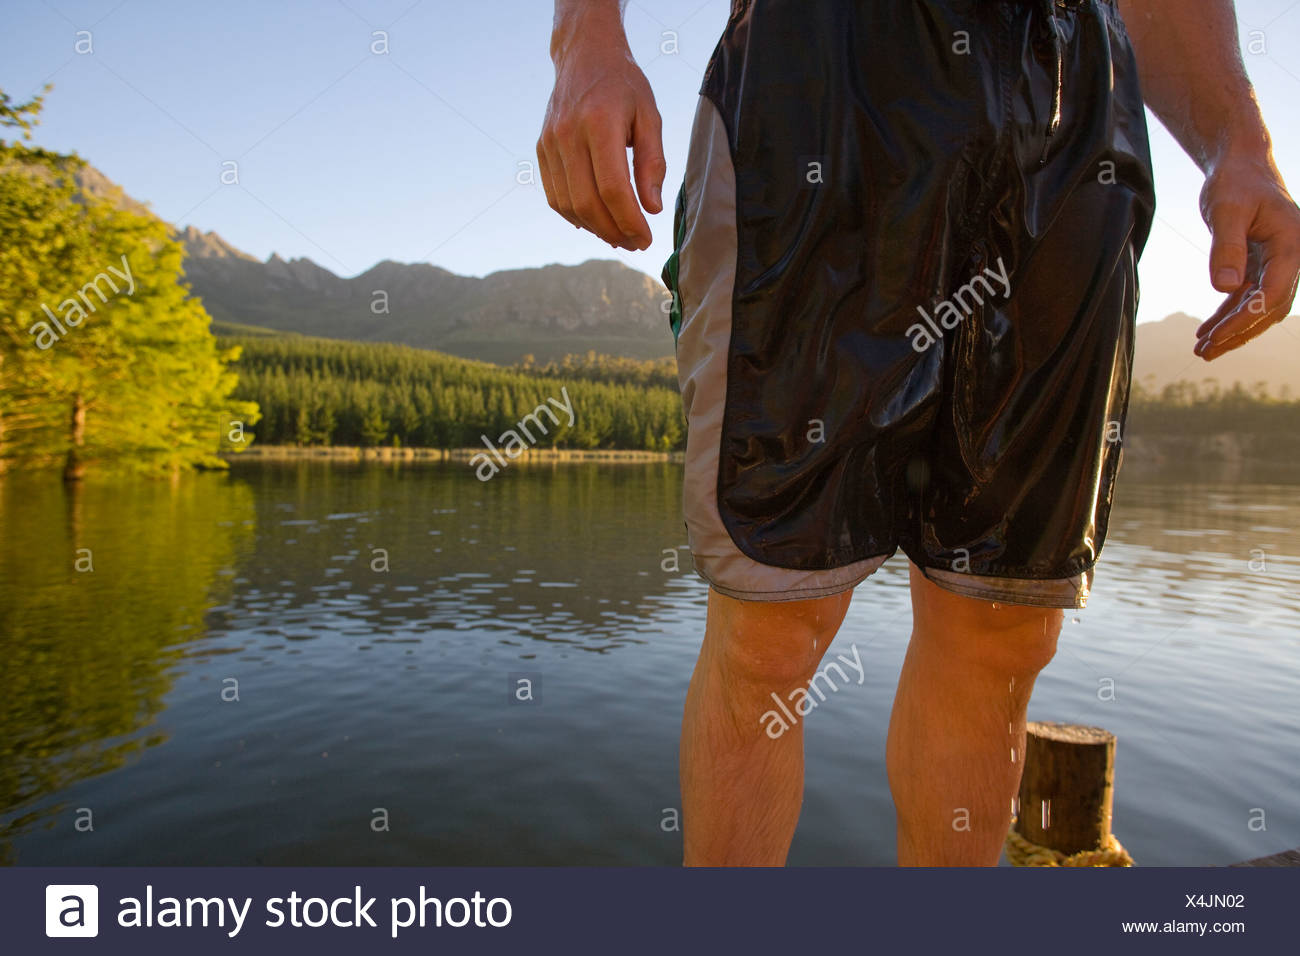 Midsection of man in wet swim trunks - Stock Image